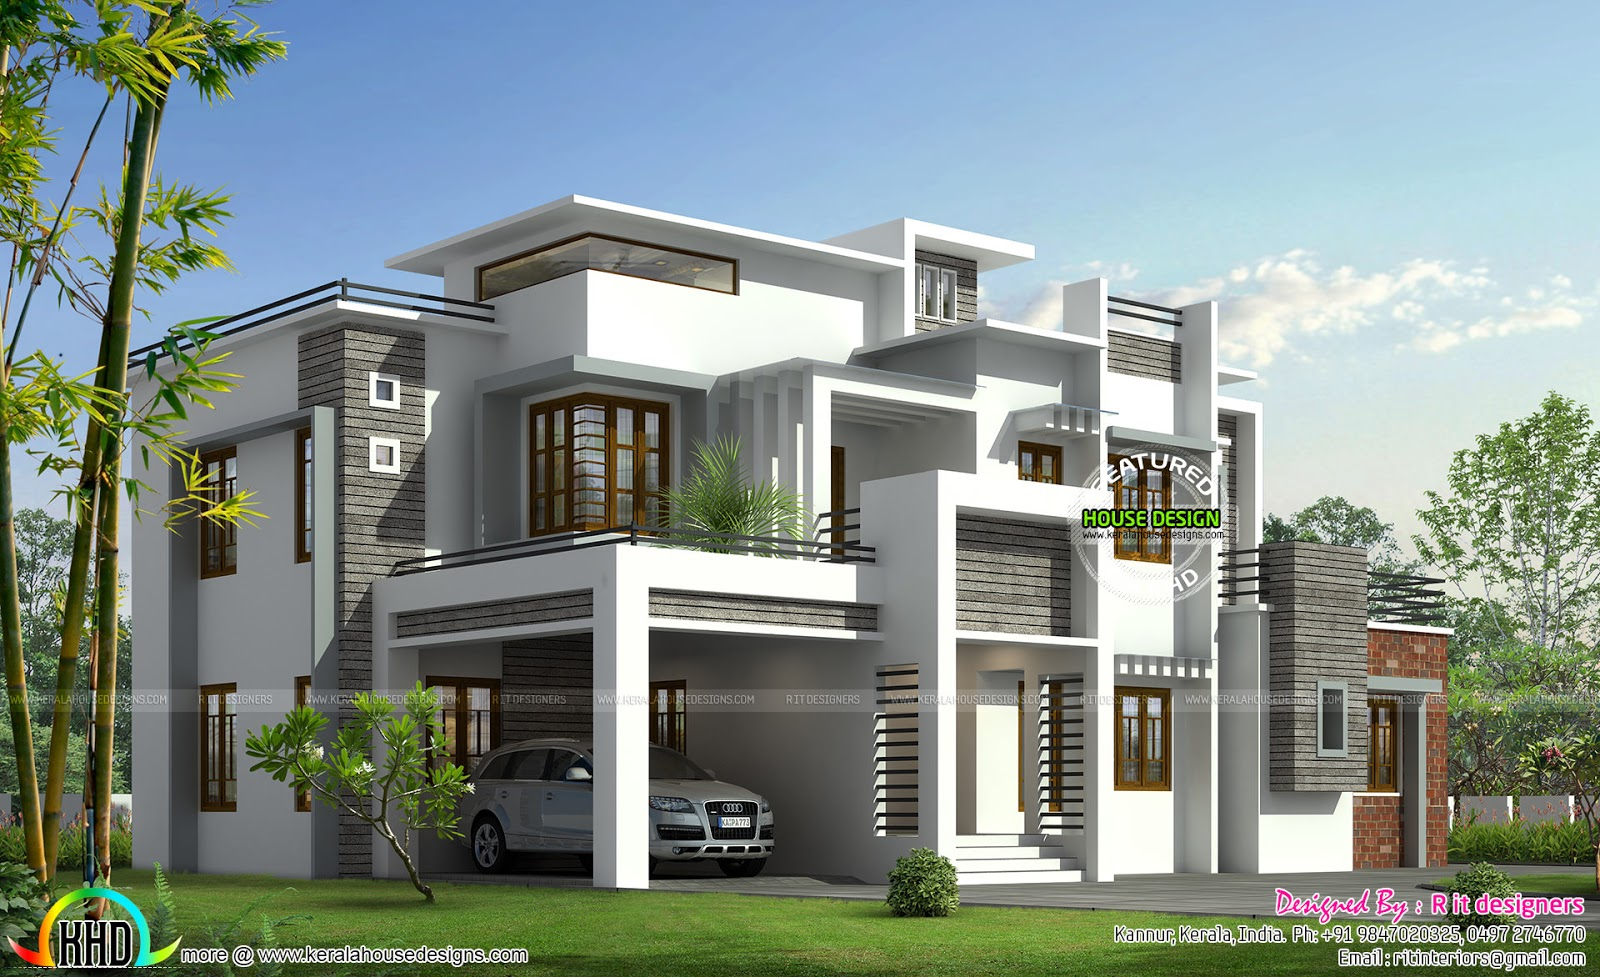 Box model contemporary house - Kerala home design and ...